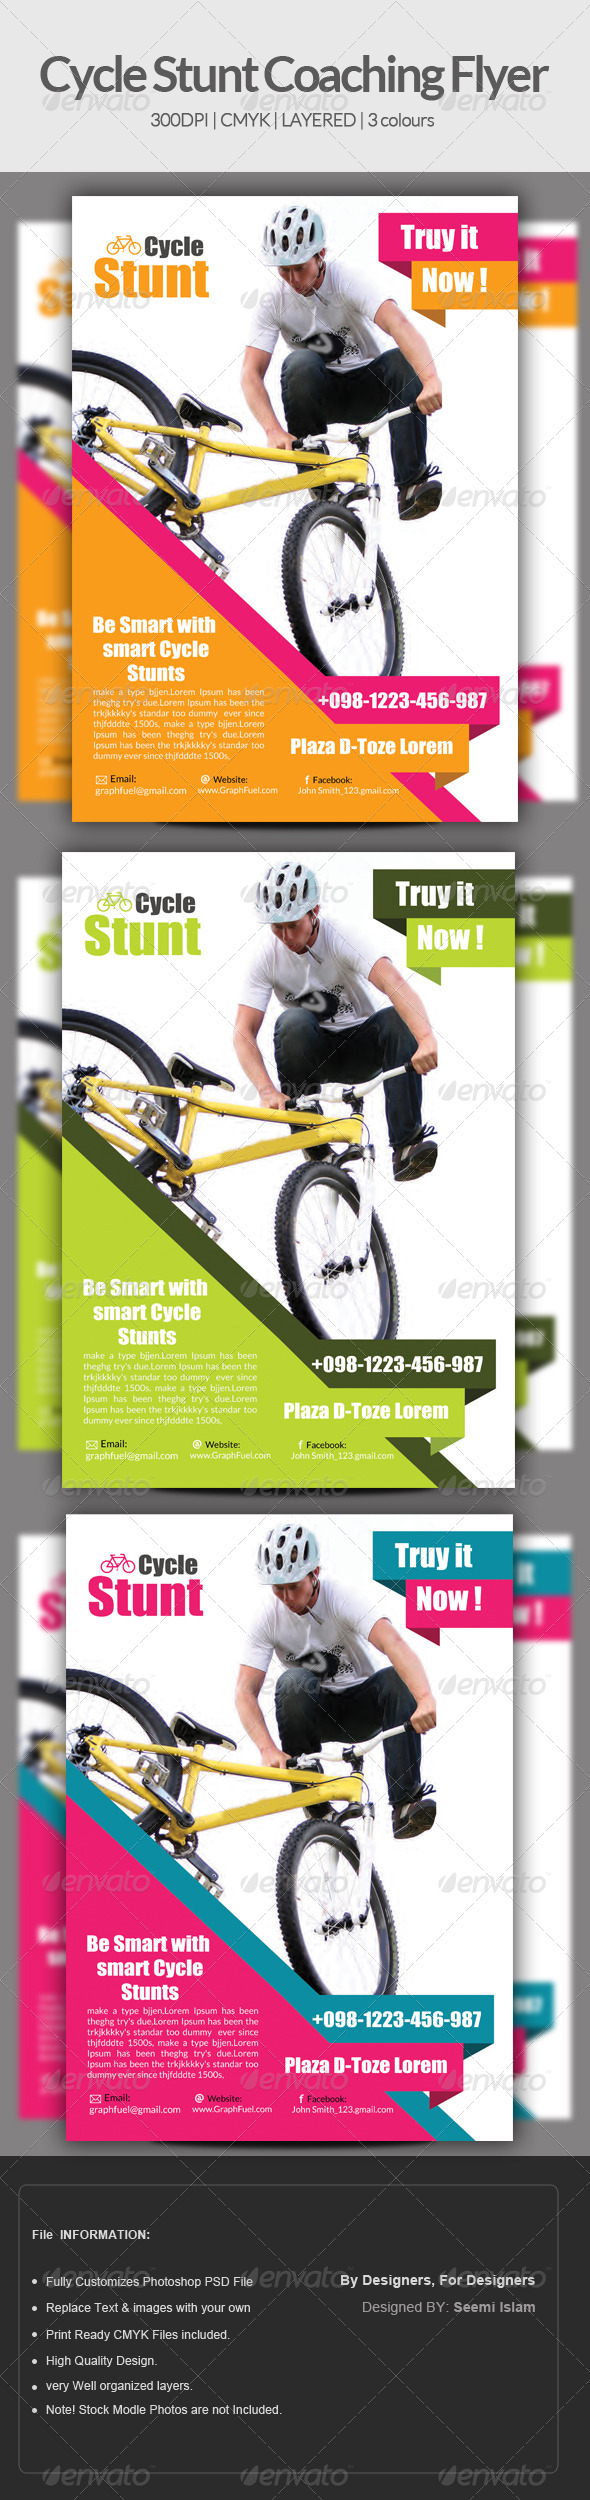 GraphicRiver Cycle Stunt Coaching Flyer Template 6973268